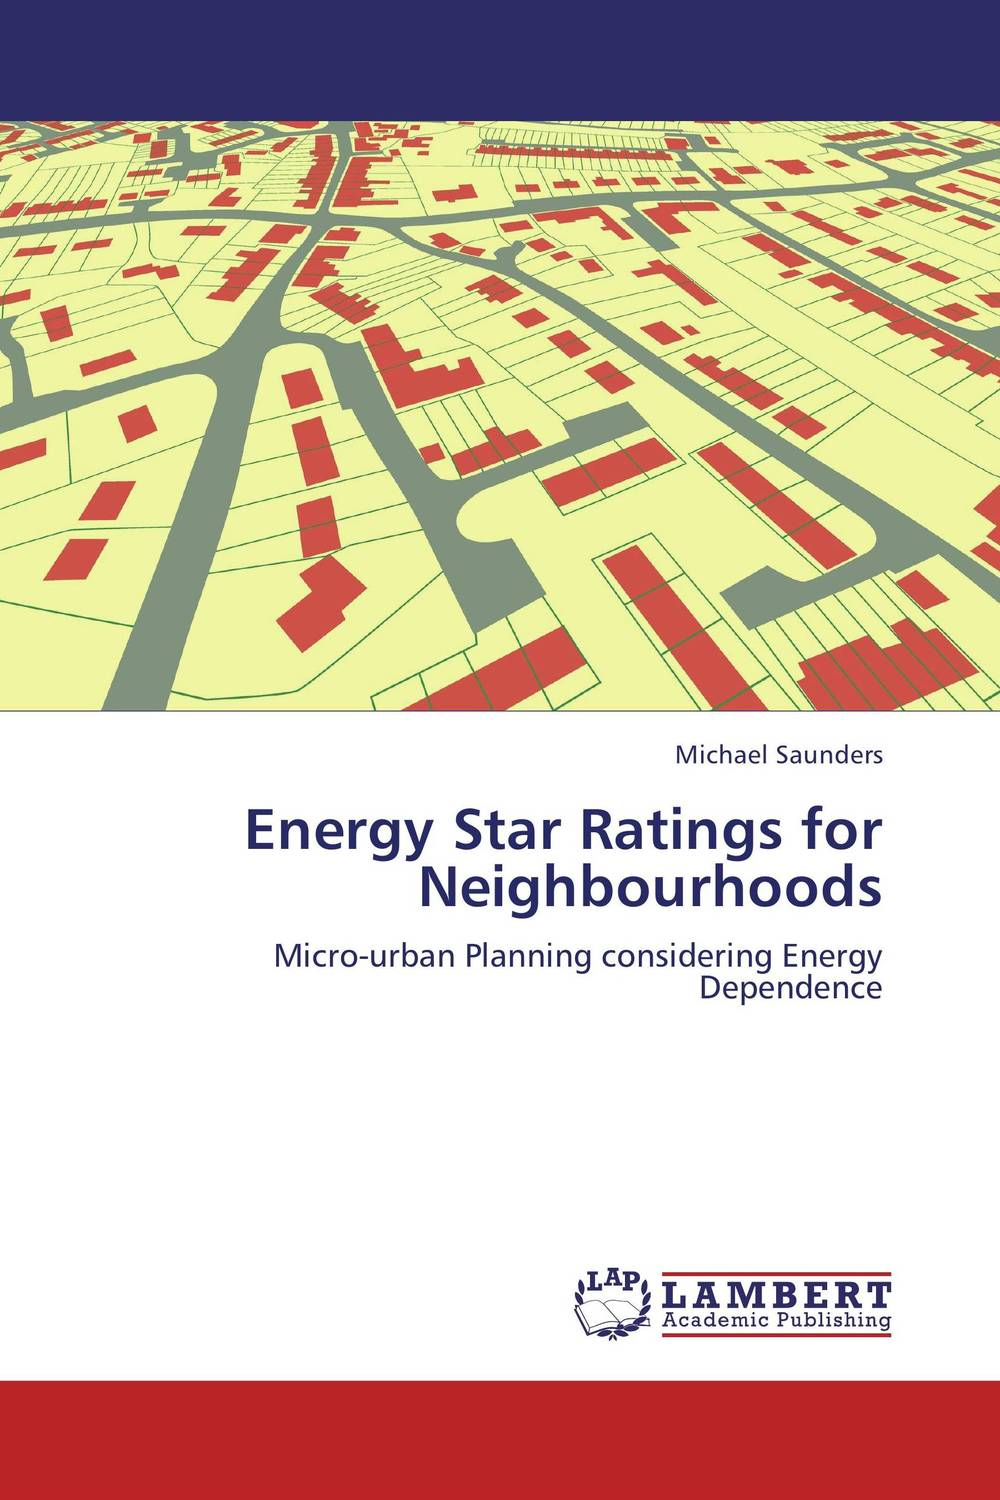 Energy Star Ratings for Neighbourhoods